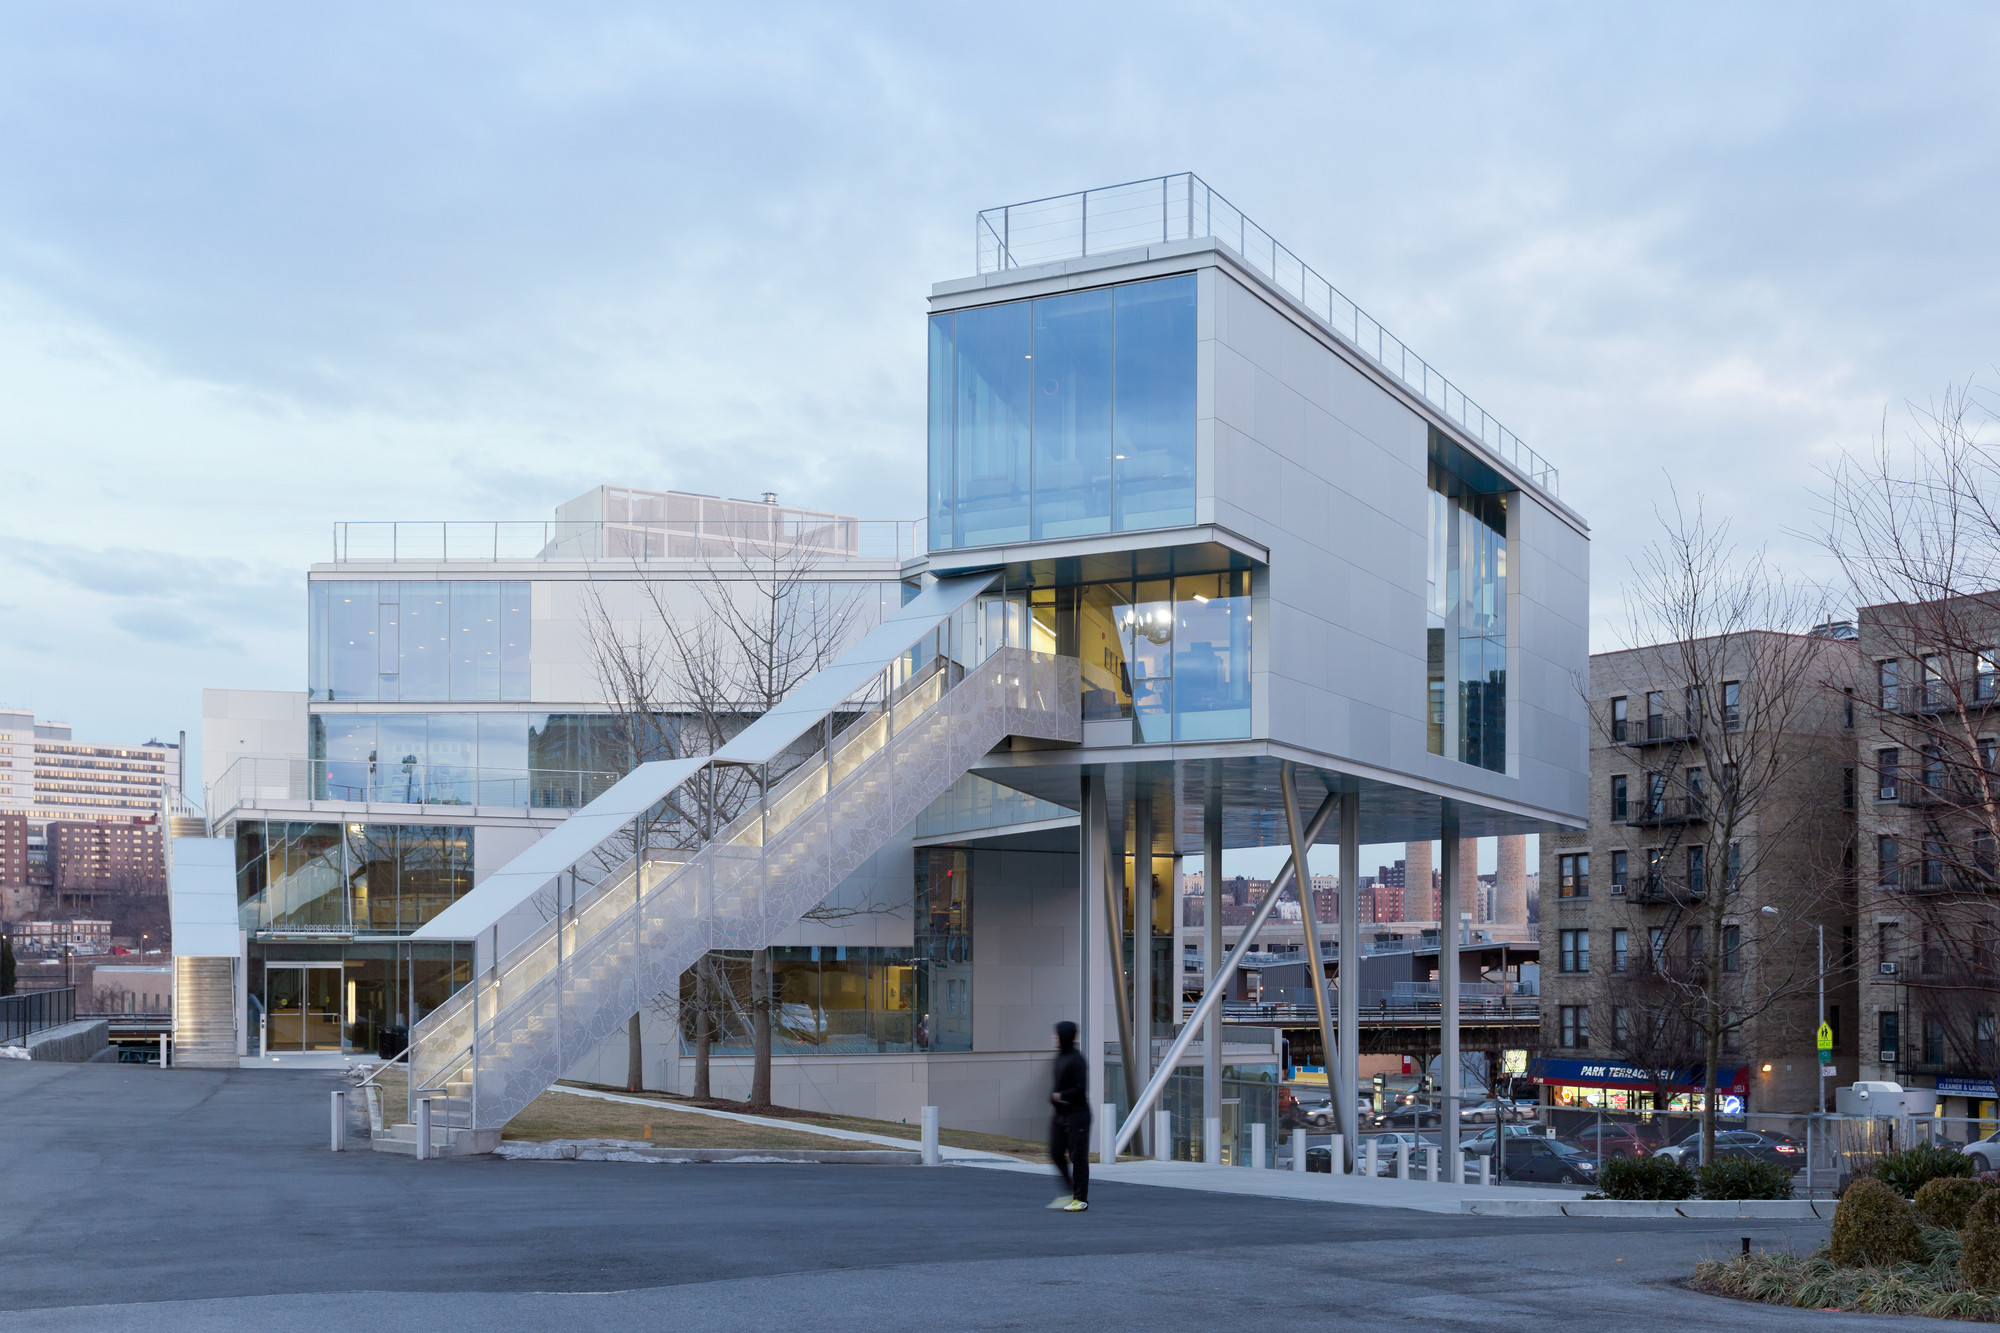 Campbell 体育中心 / Steven Holl Architects, © Iwan Baan